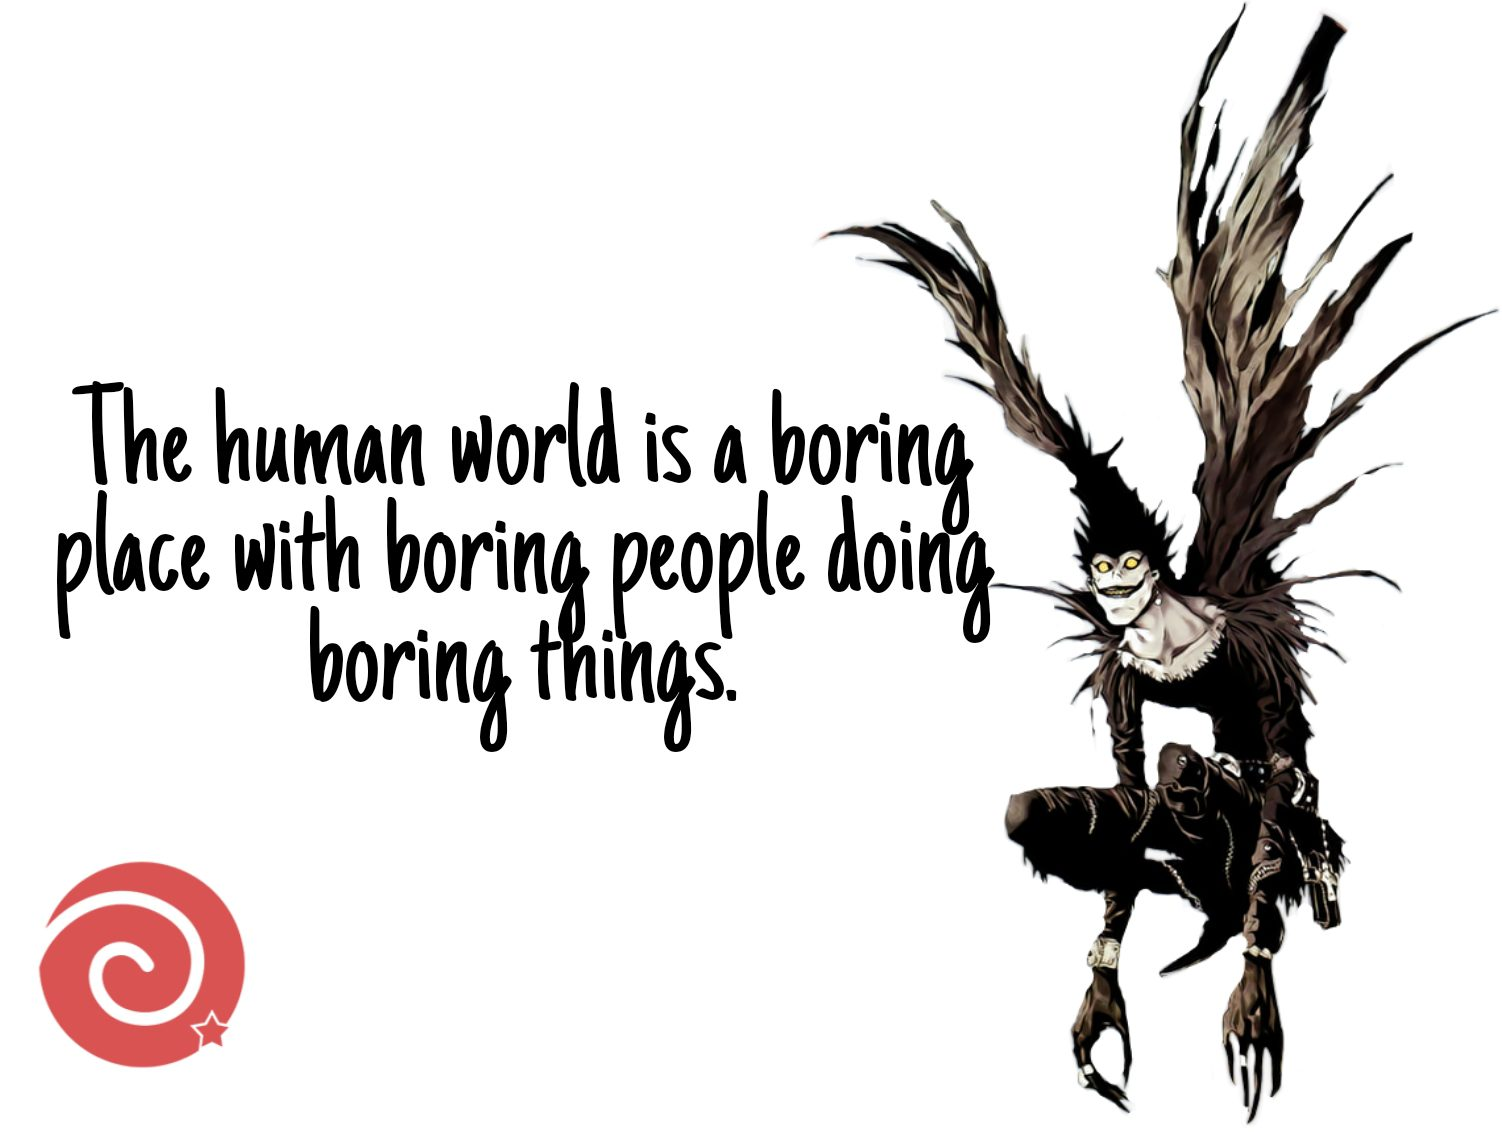 Quotes by Ryuk